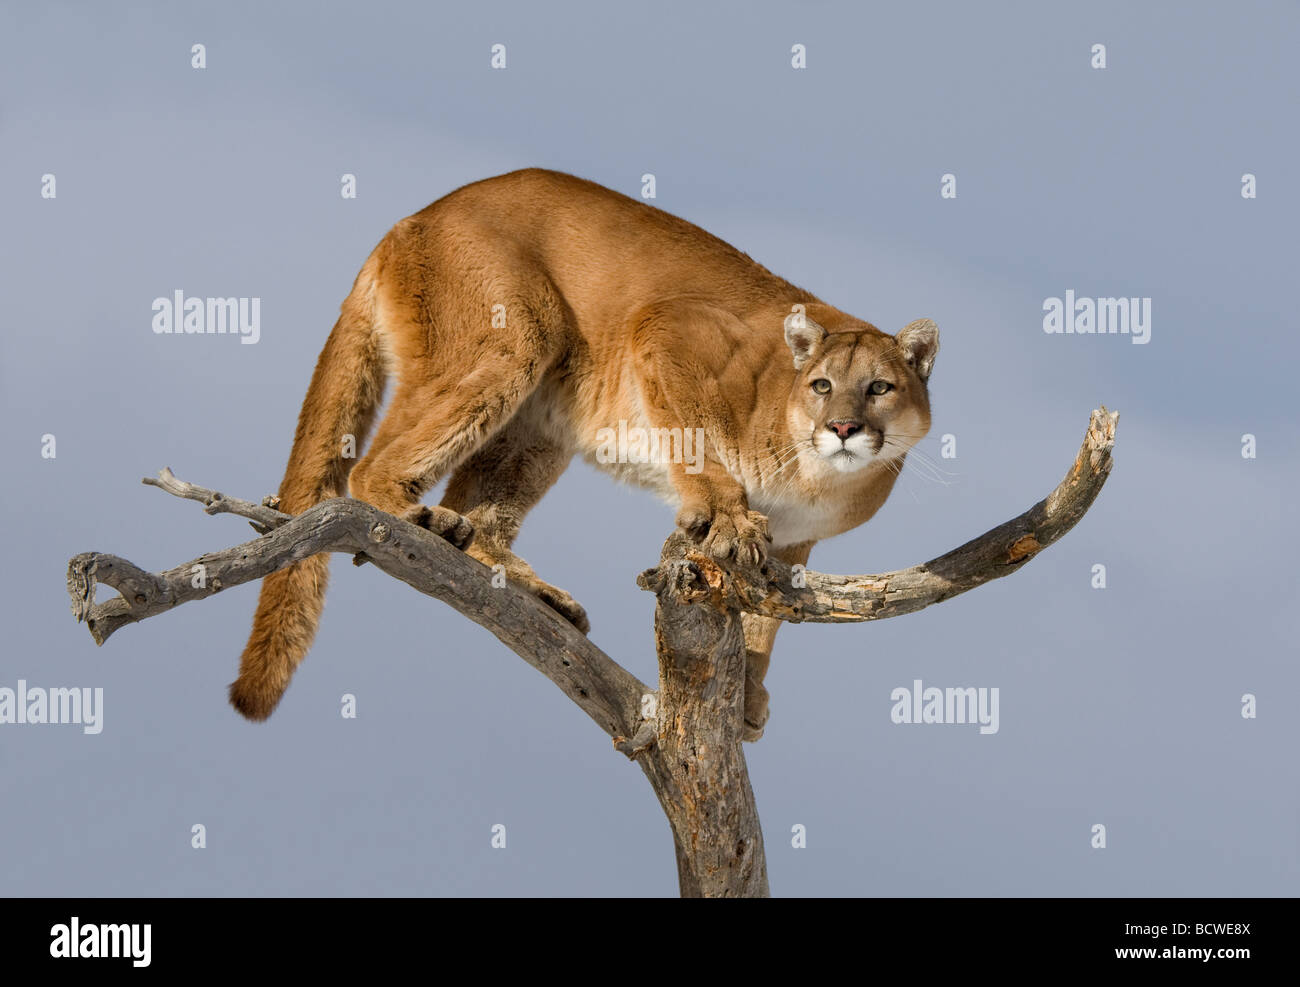 Mountain lion (Puma concolor) standing on a tree - Stock Image